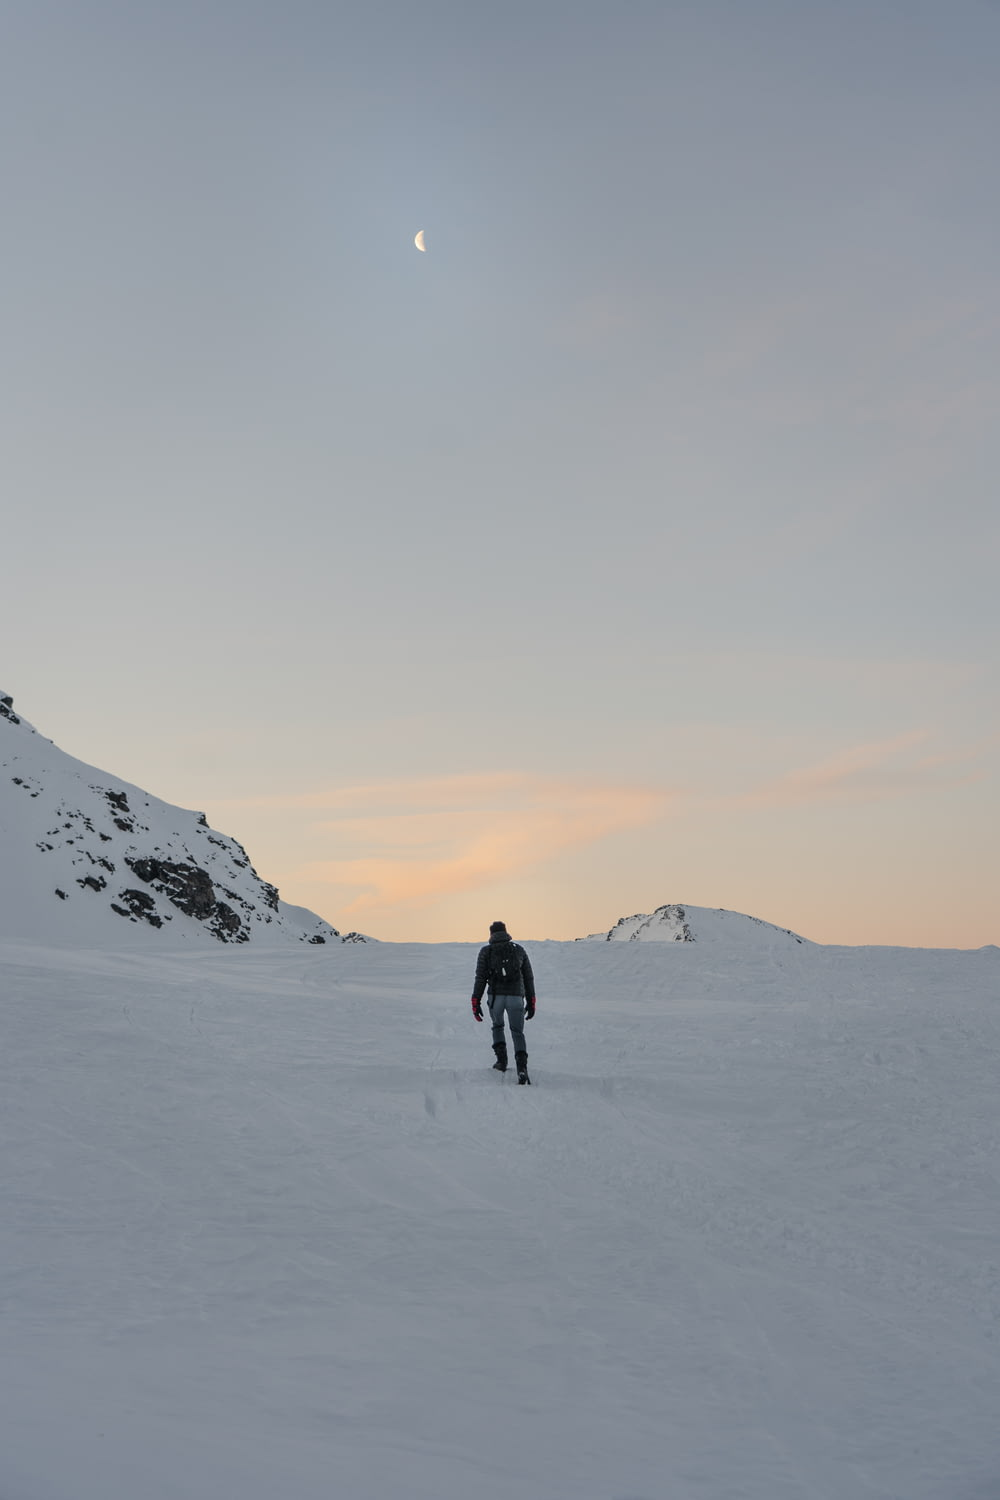 person walking on snow-covered field and mountain during daytime